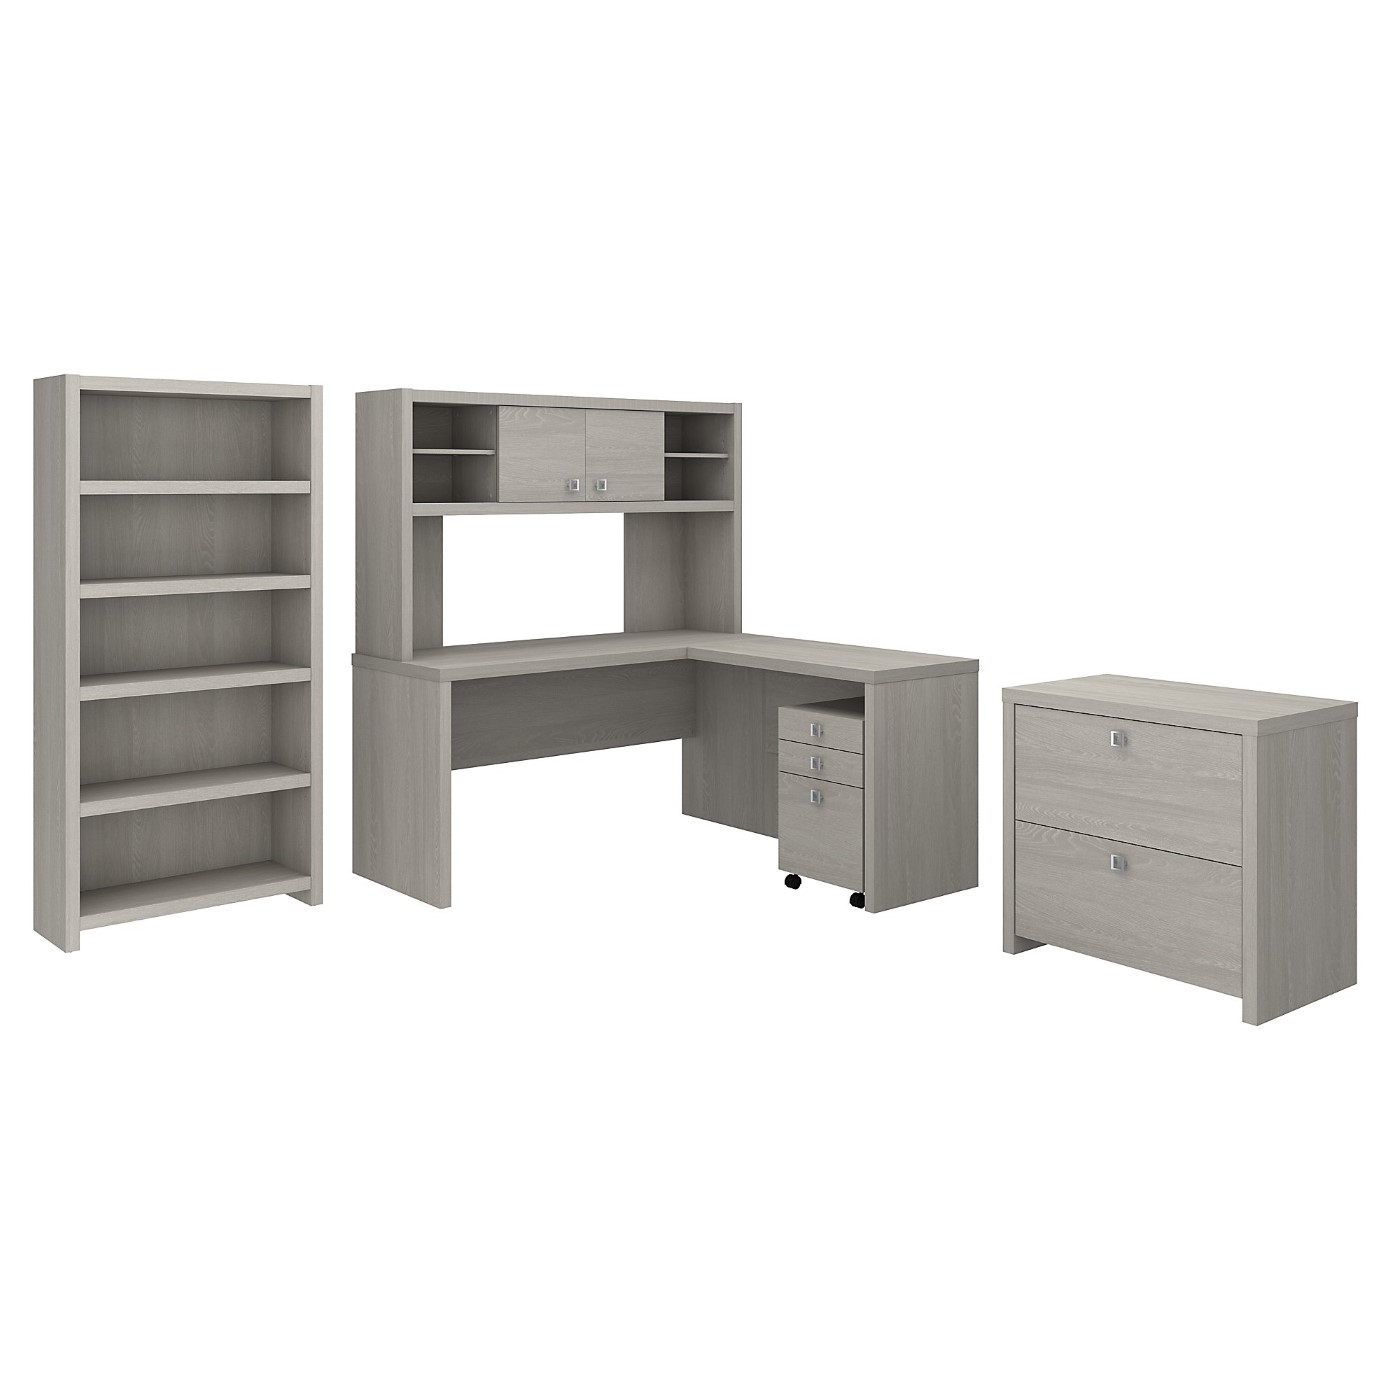 </b></font><b>The kathy ireland� Echo L Shaped Desk with Hutch, Bookcase and File Cabinets is Sustainable Eco Friendly Furniture. Includes Free Shipping! 30H x 72L x 72W</b></font>  VIDEO BELOW. <p>RATING:&#11088;&#11088;&#11088;&#11088;</b></font></b>